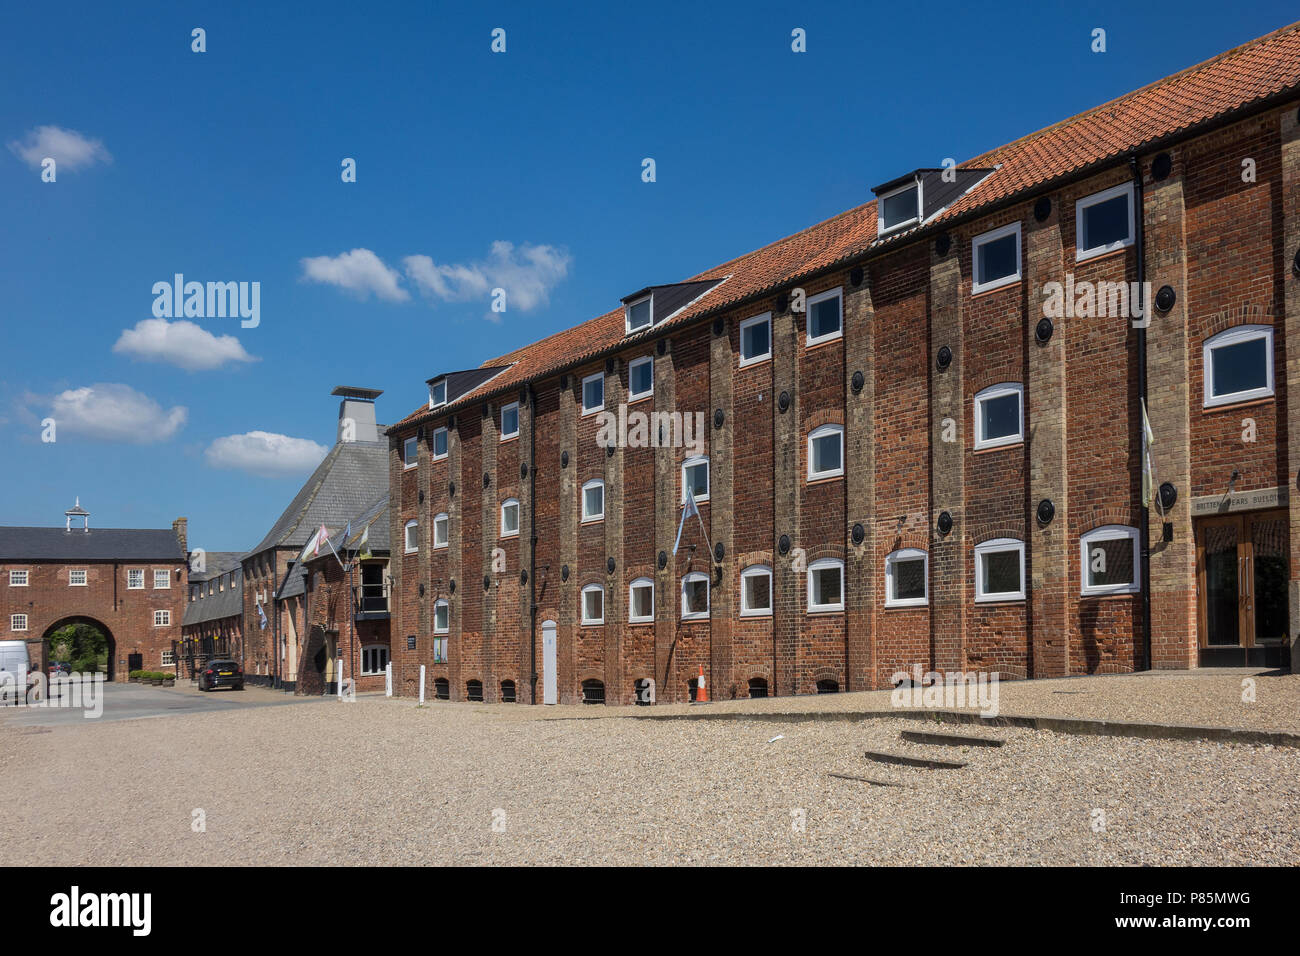 England, Suffolk, Aldeburgh, Snape, Maltings, Britten-Pears building - Stock Image